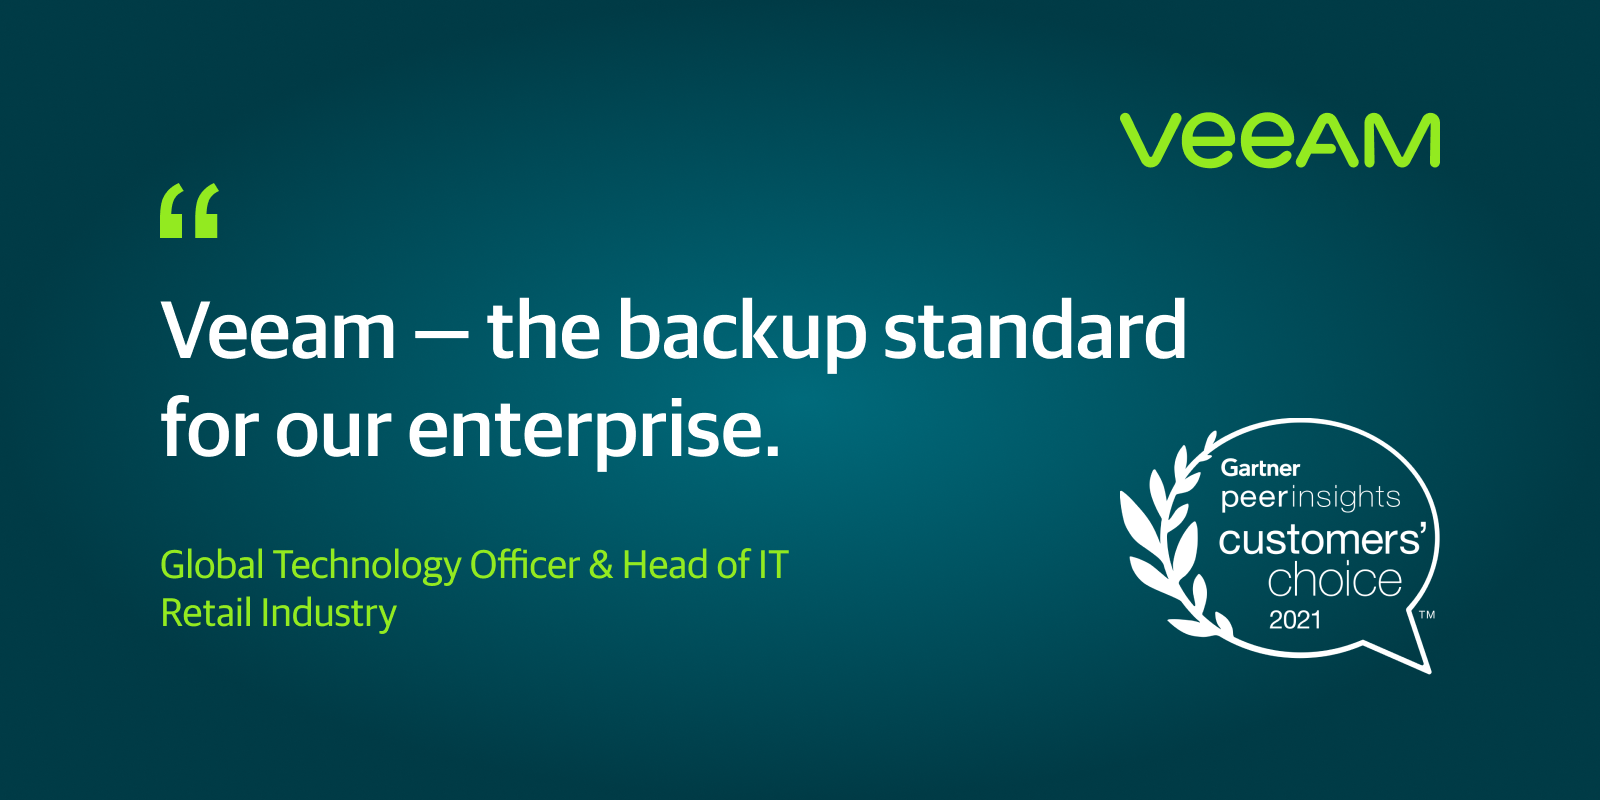 Veeam Recognized as a 2021 Gartner Peer Insights Customers' Choice in the Data Center Backup and Recovery Solutions market